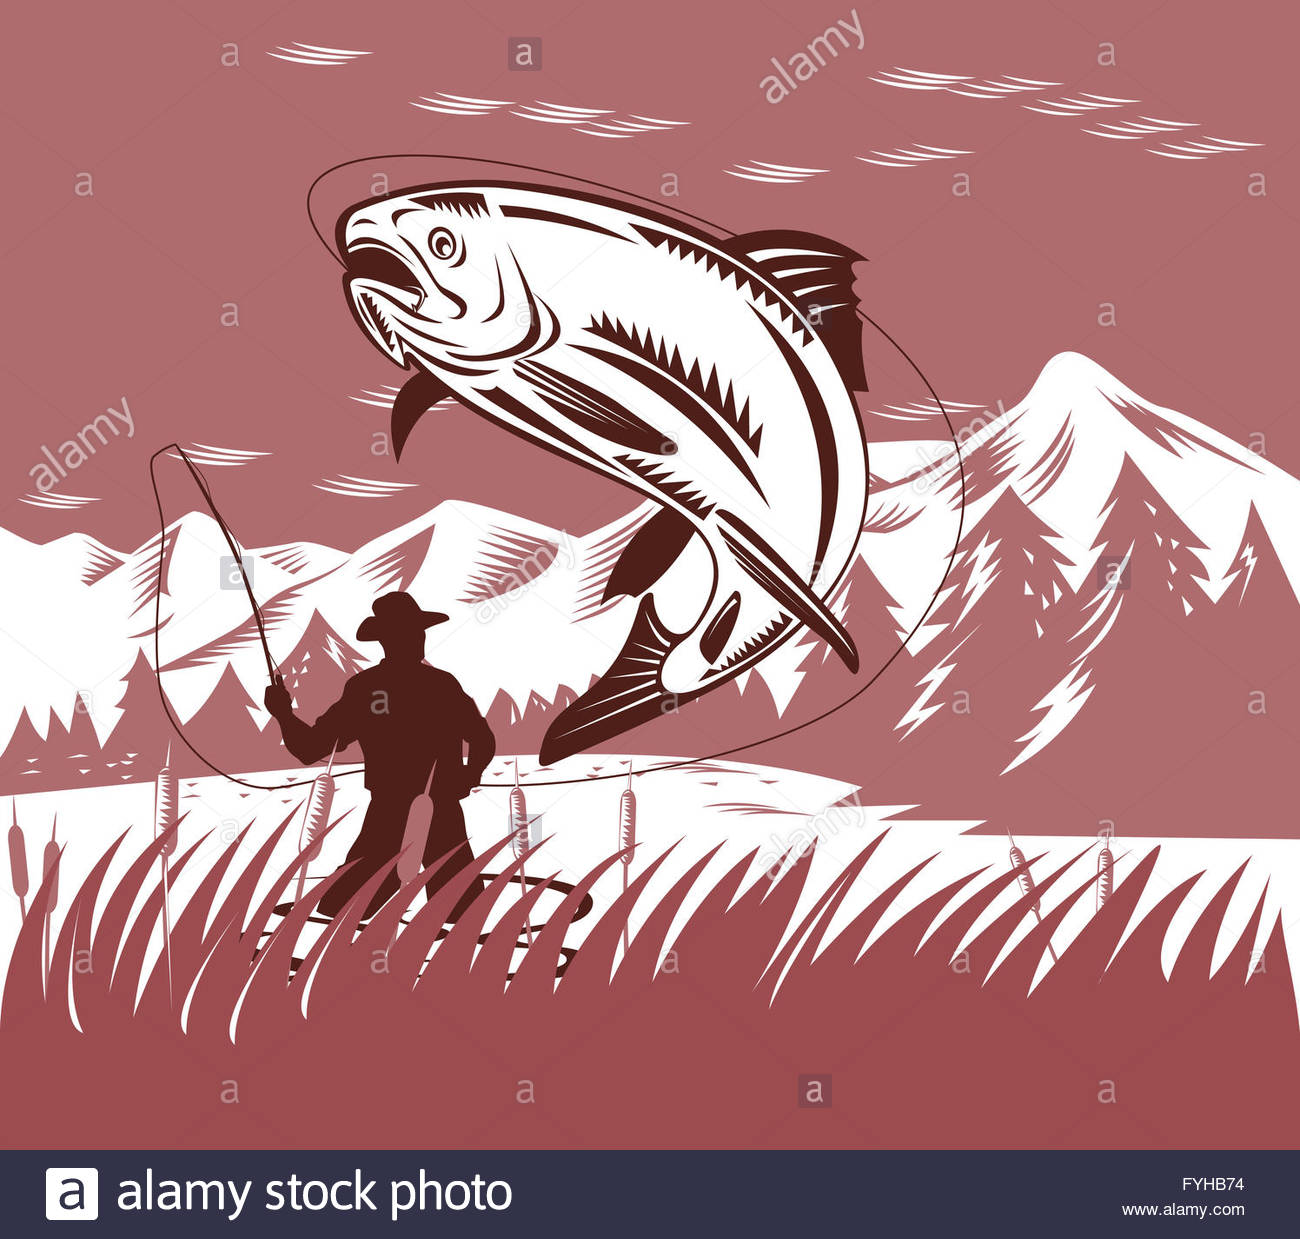 Fly Fisherman Drawing at GetDrawings.com | Free for personal use Fly ...